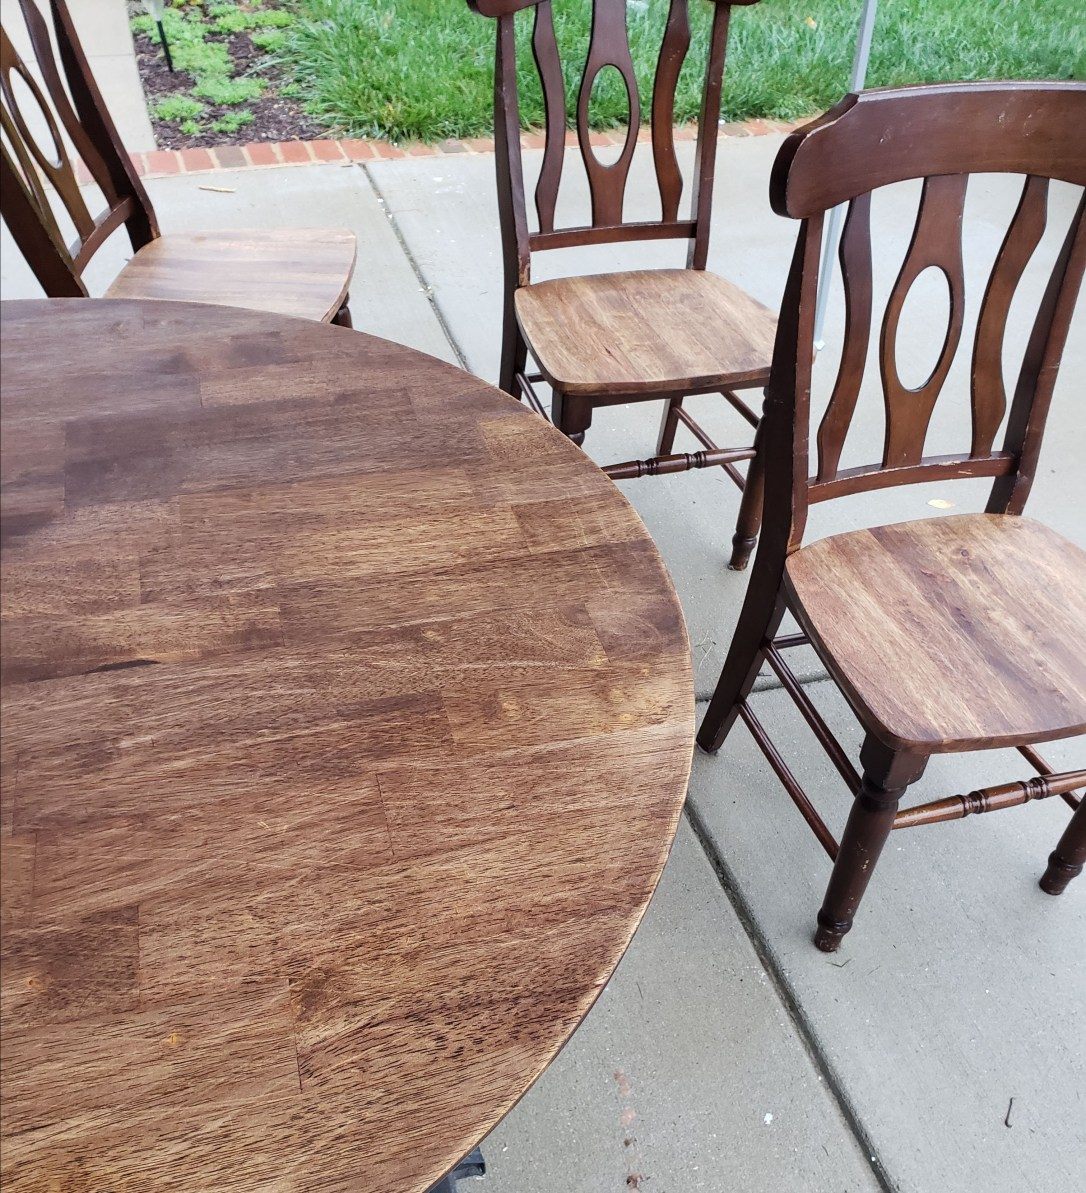 Picture of refinishing round table and chairs after stain removal